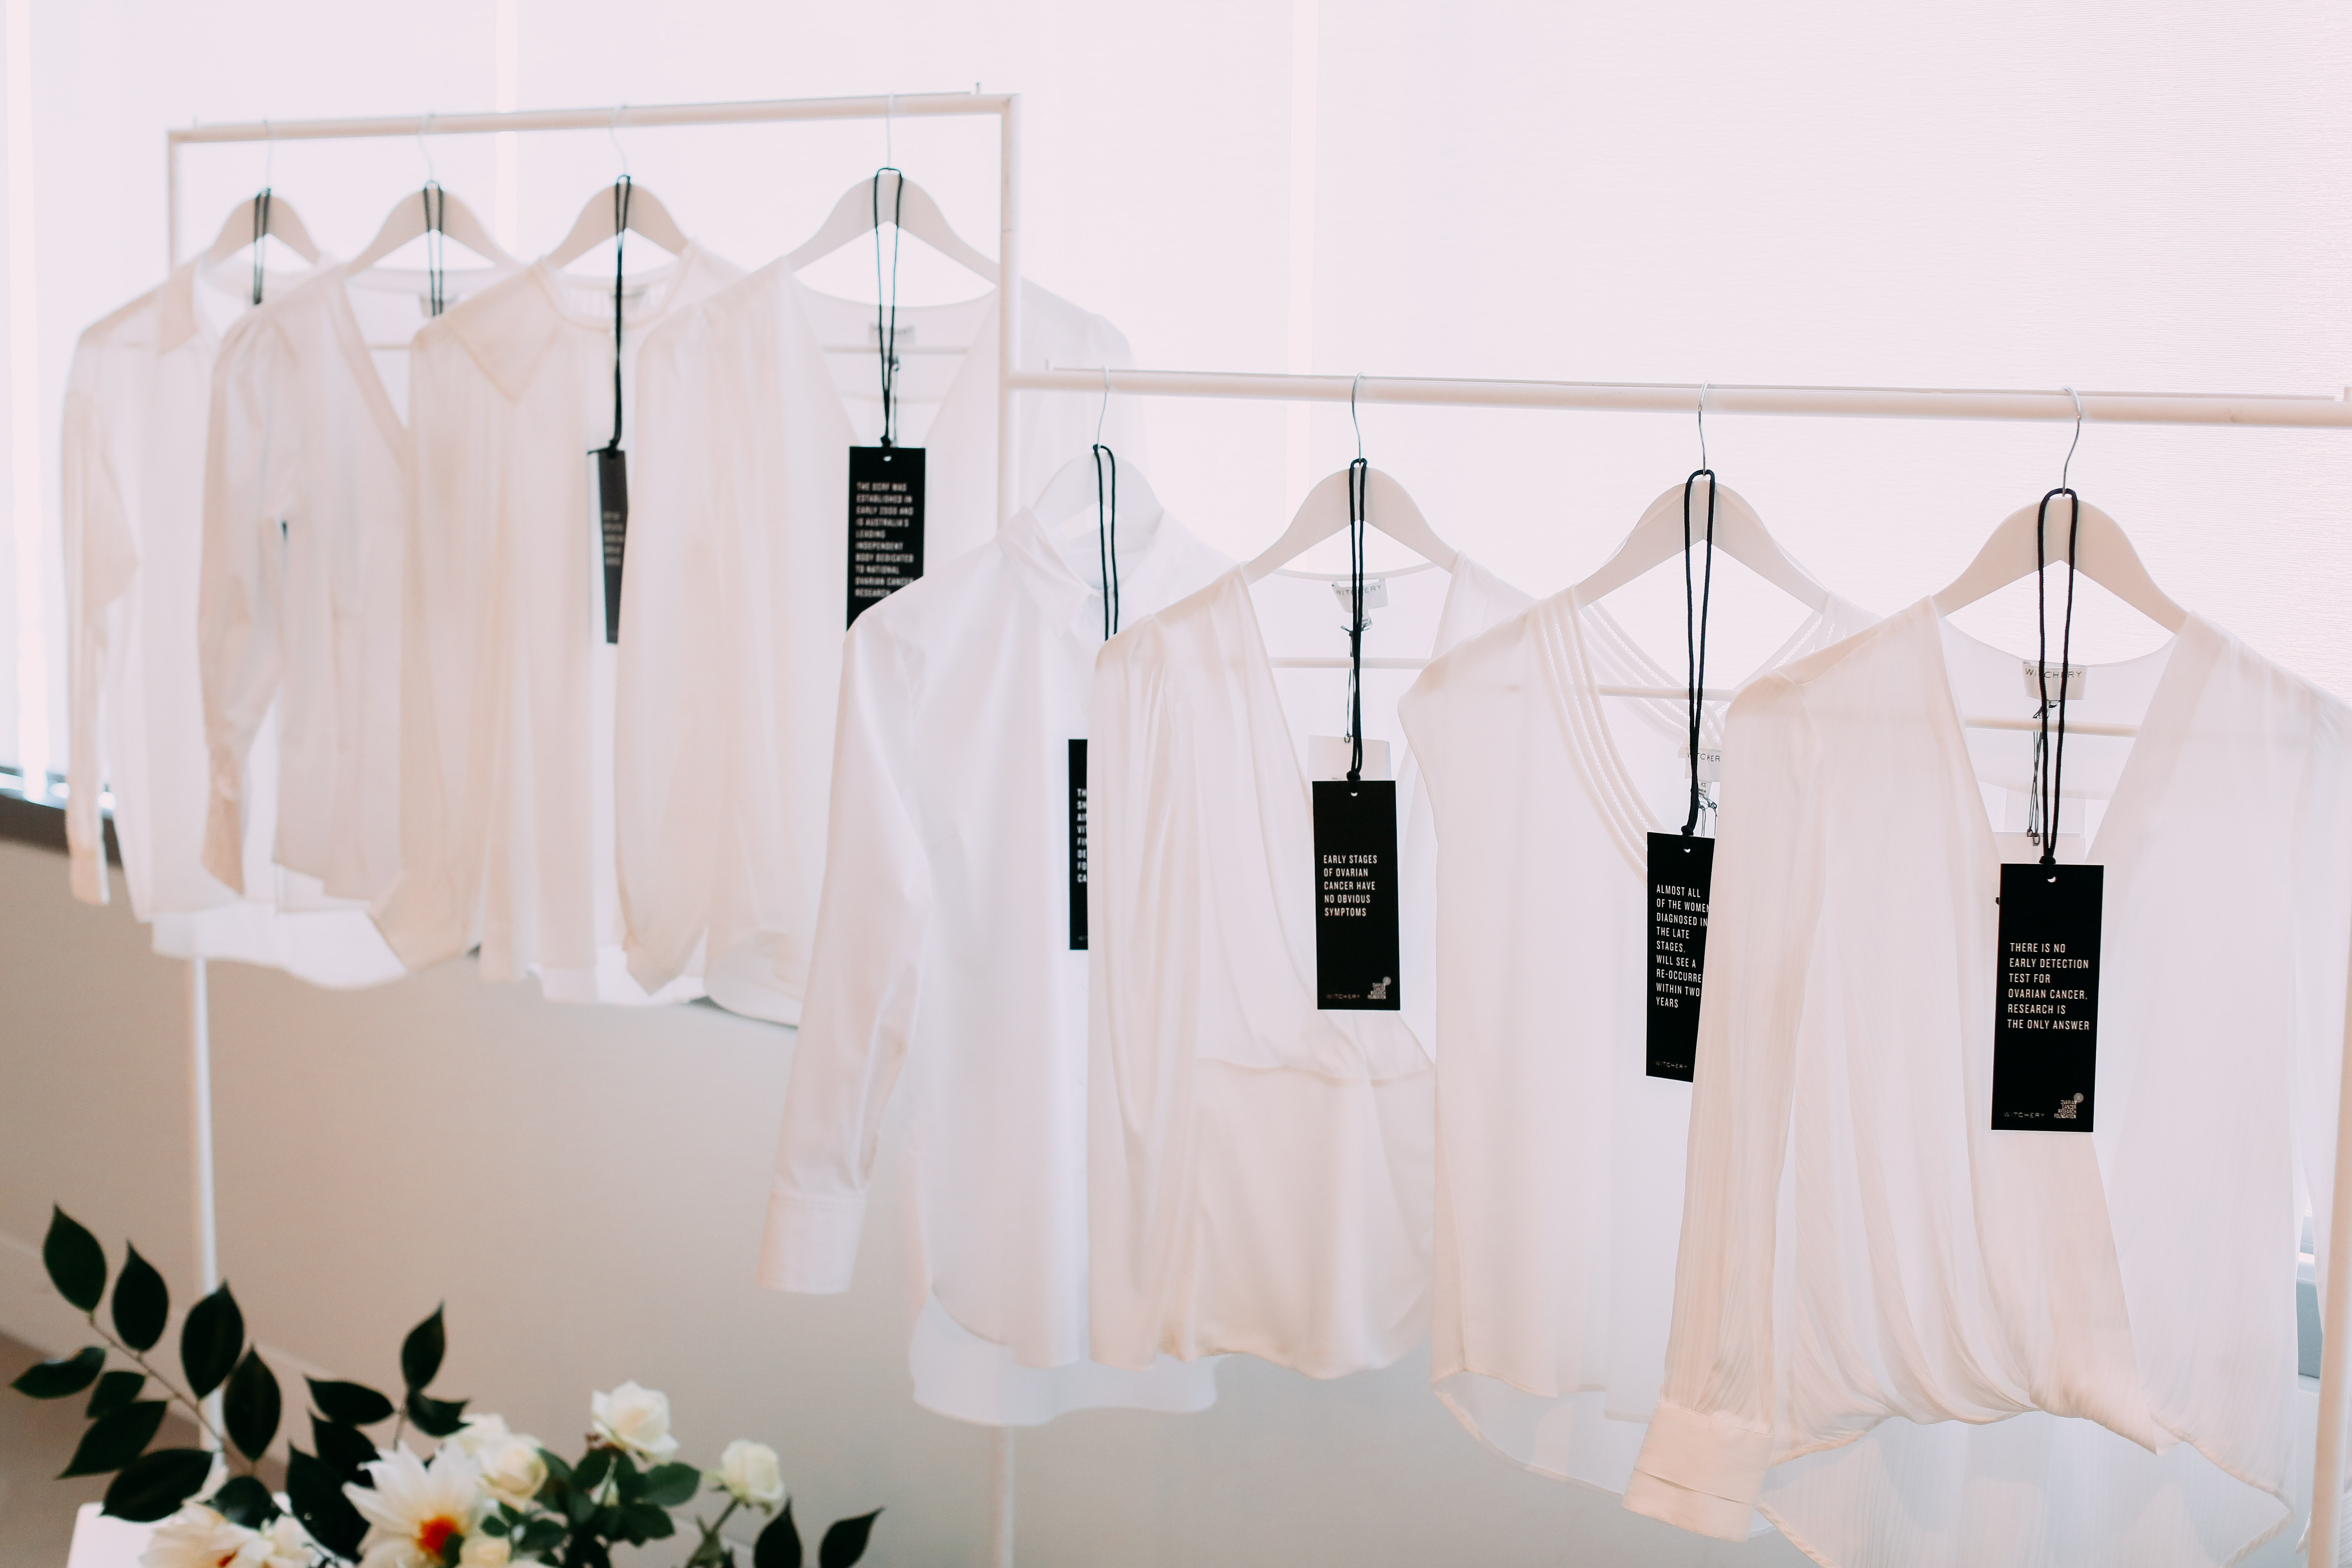 2019 Witchery White Shirt Campaign Launch at Private Residences Suite One Barangaroo Sydney 3